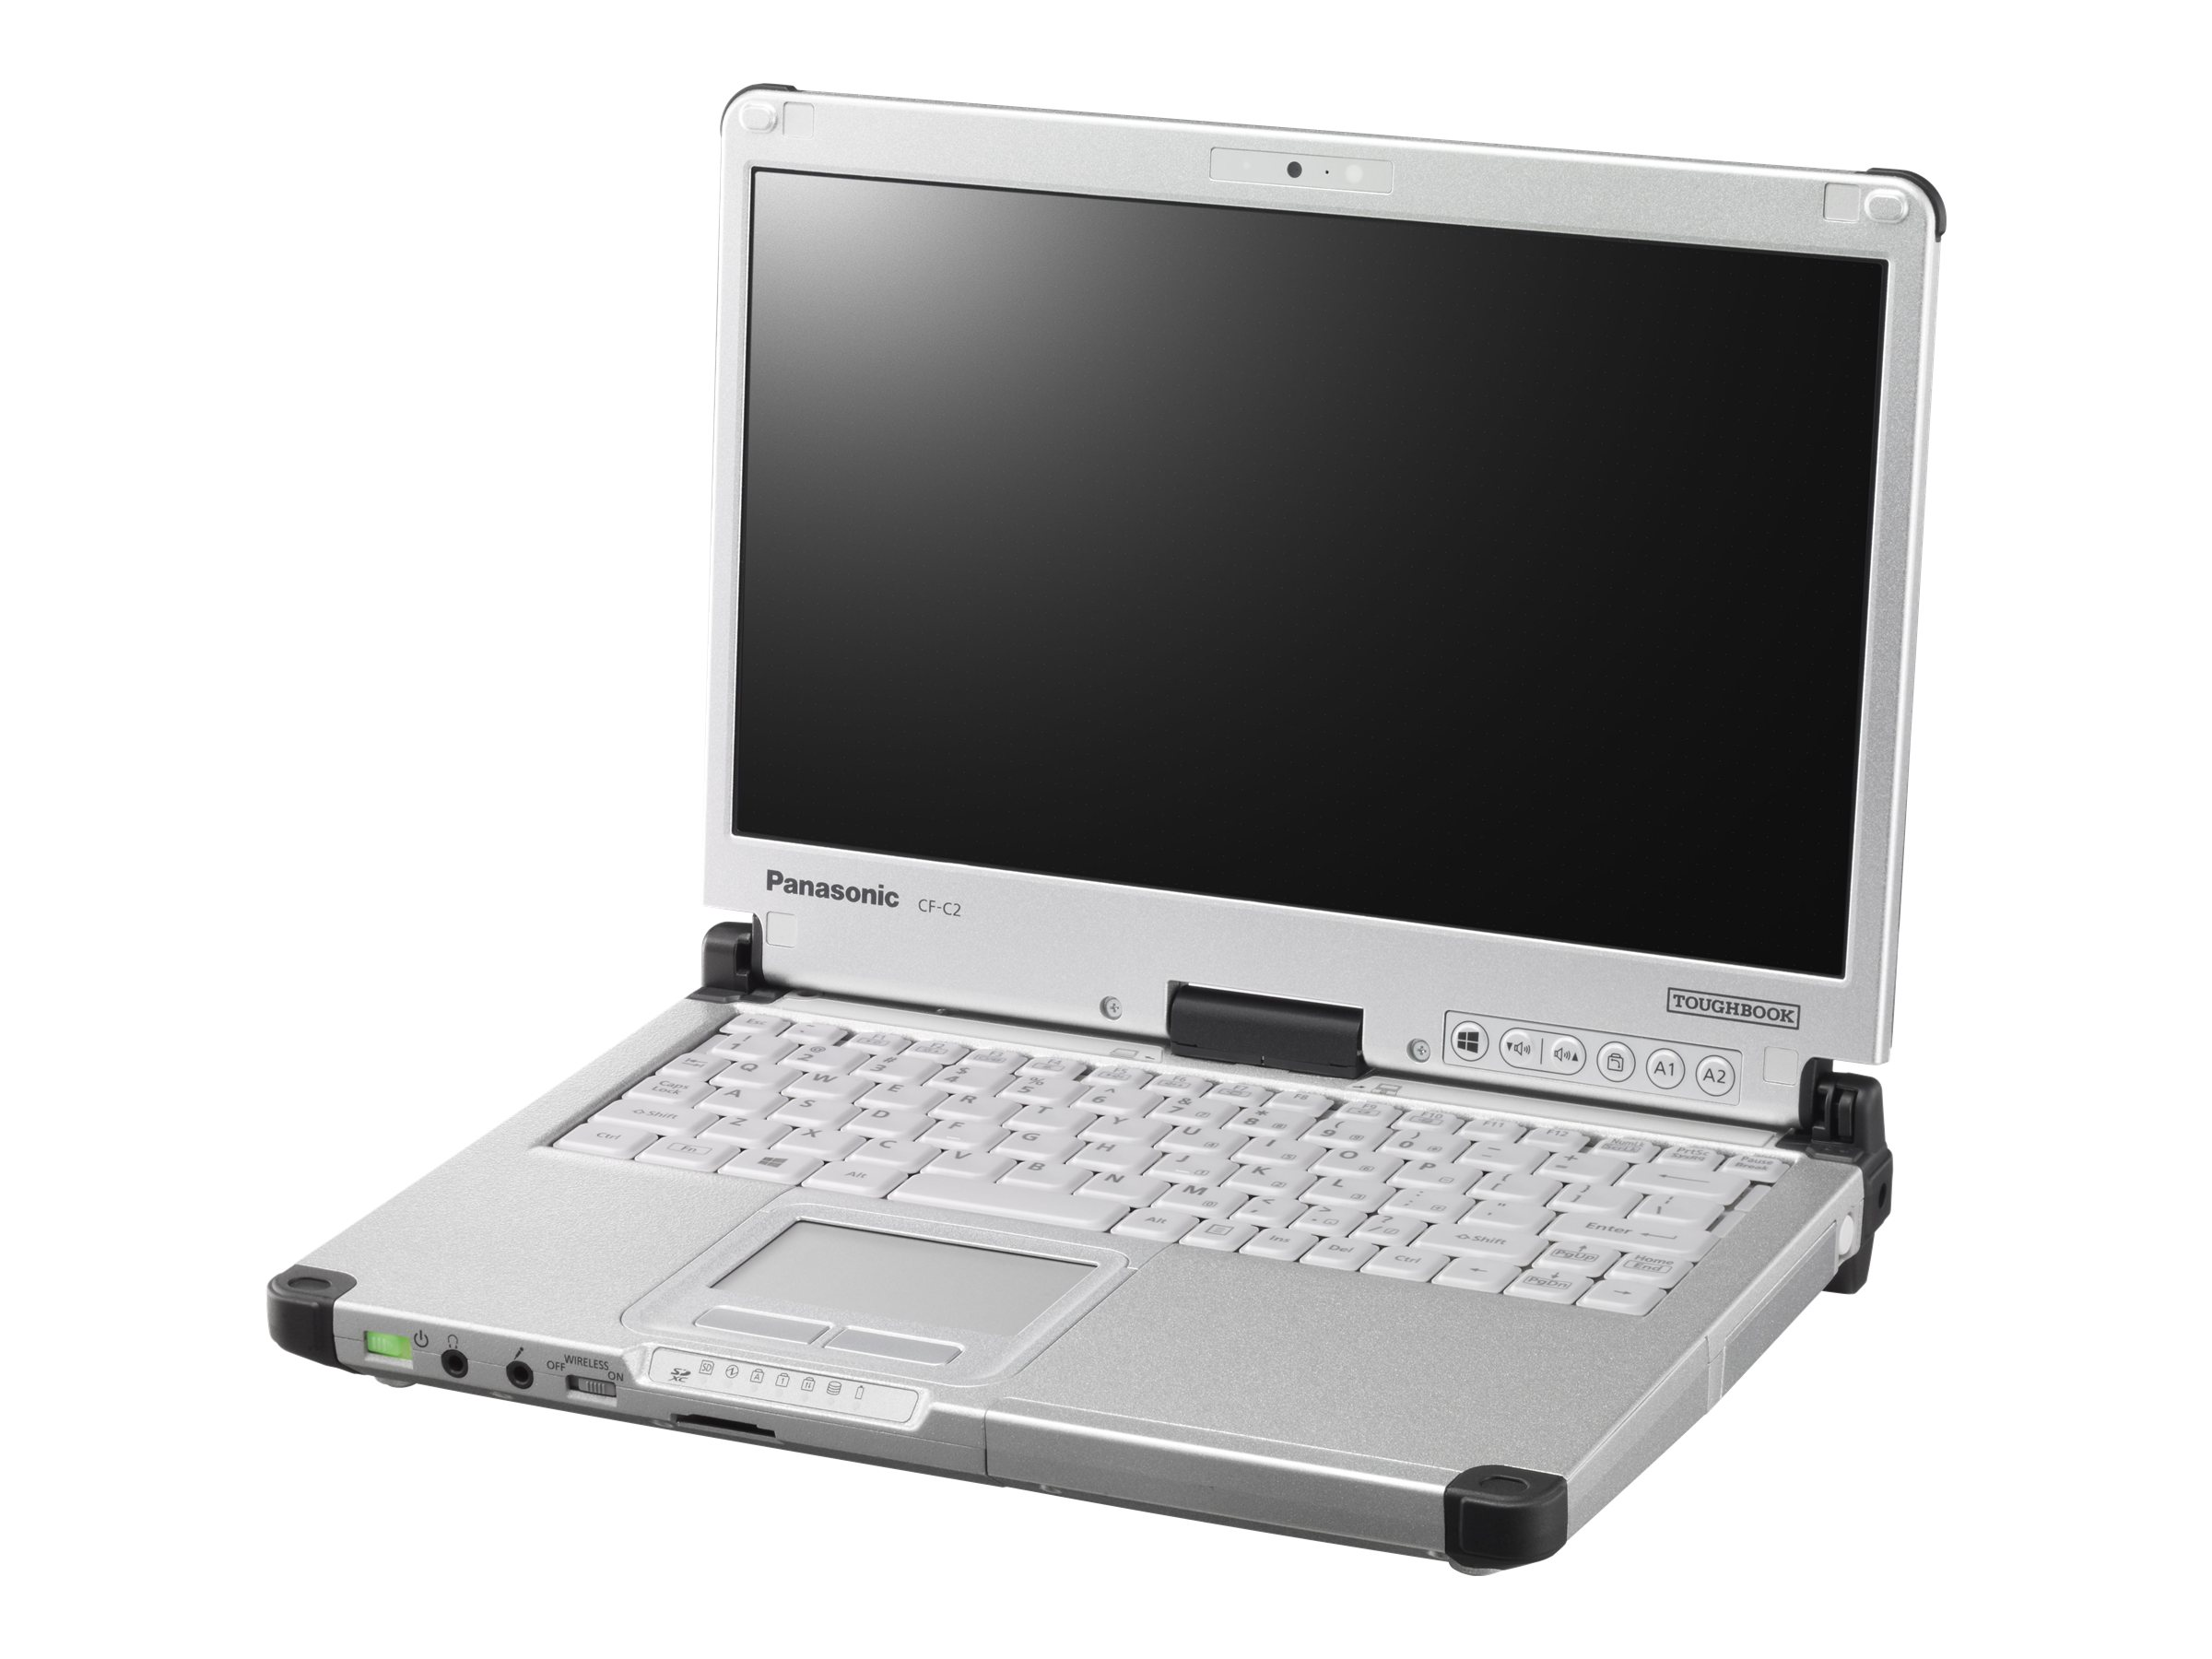 Panasonic Toughbook C2 Core i5-4310U 2.0GHz 12.5, CF-C2C7AAFKM